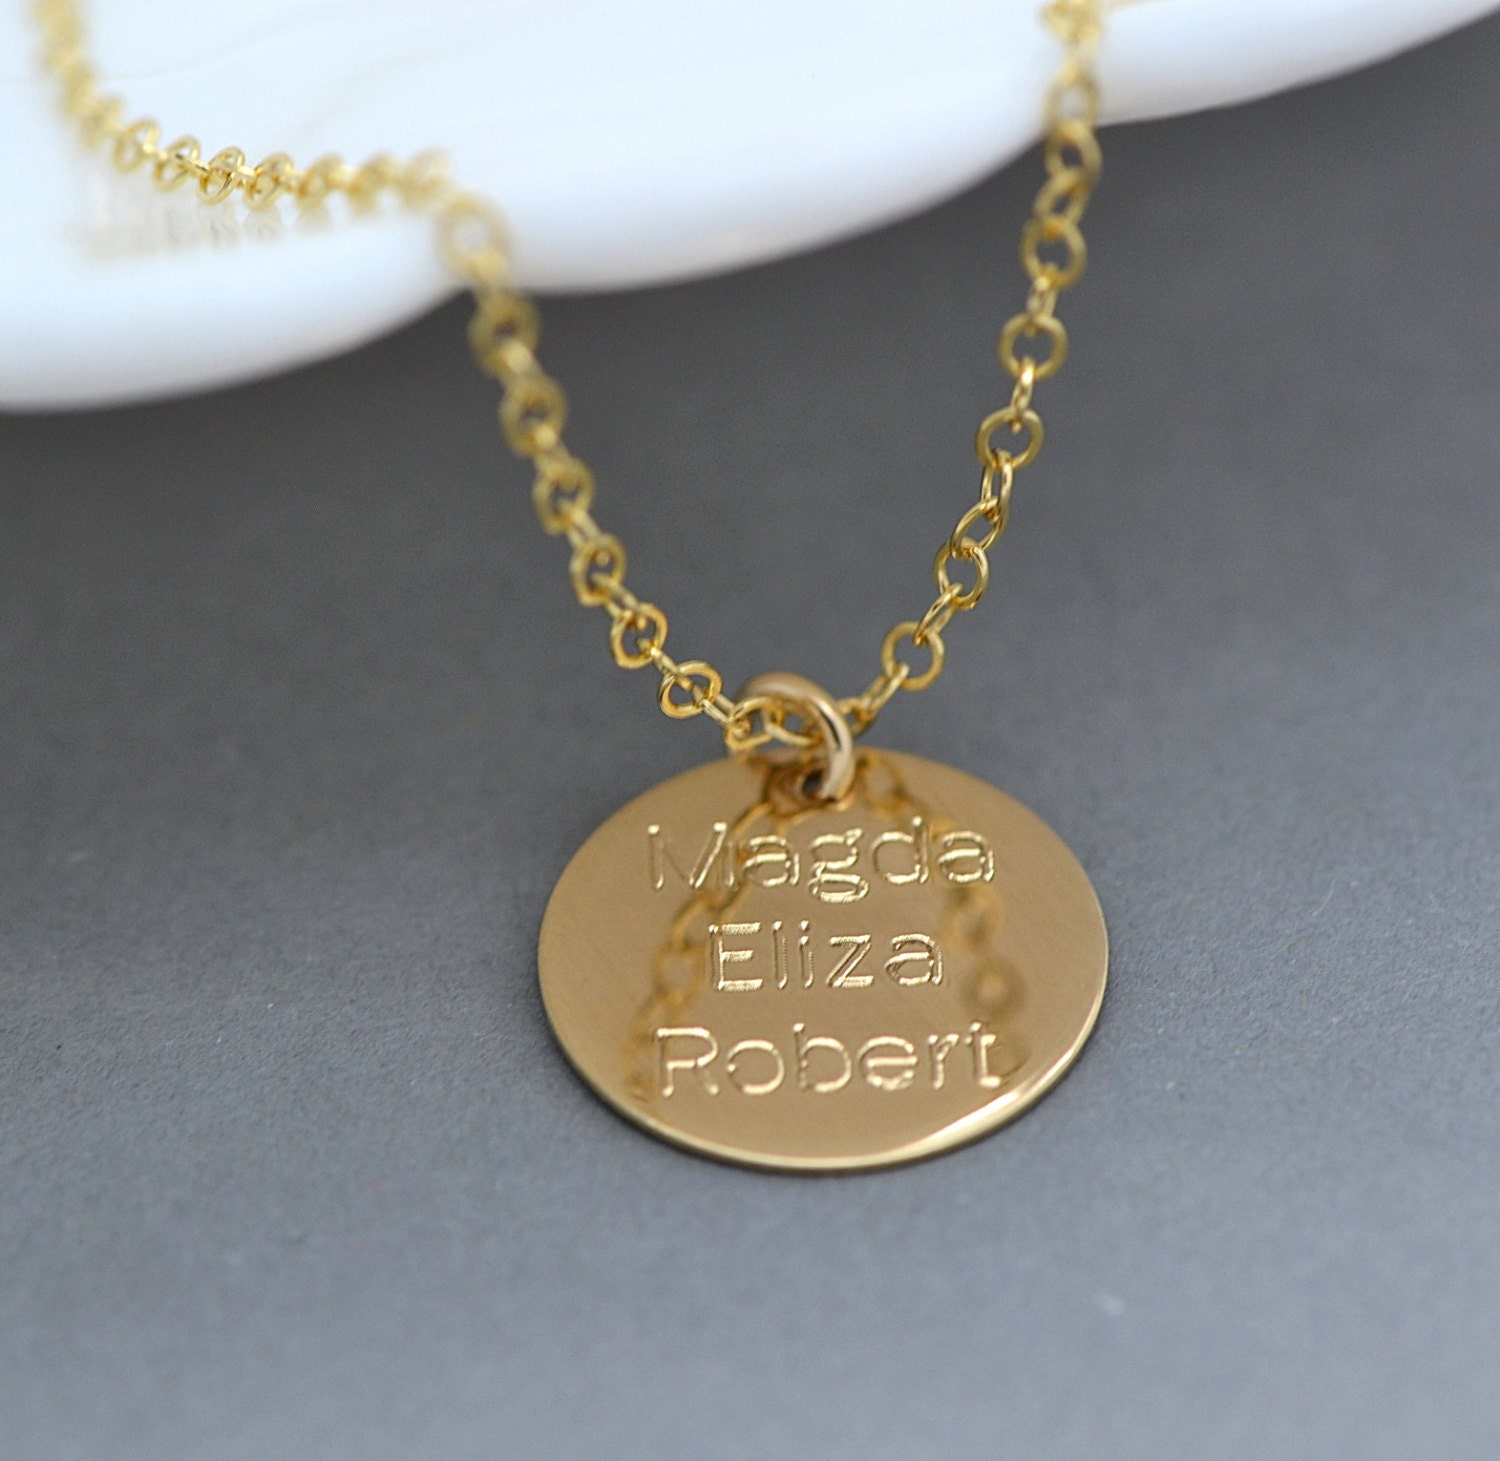 Personalized Disc Necklace / Name Necklace / Large Disc